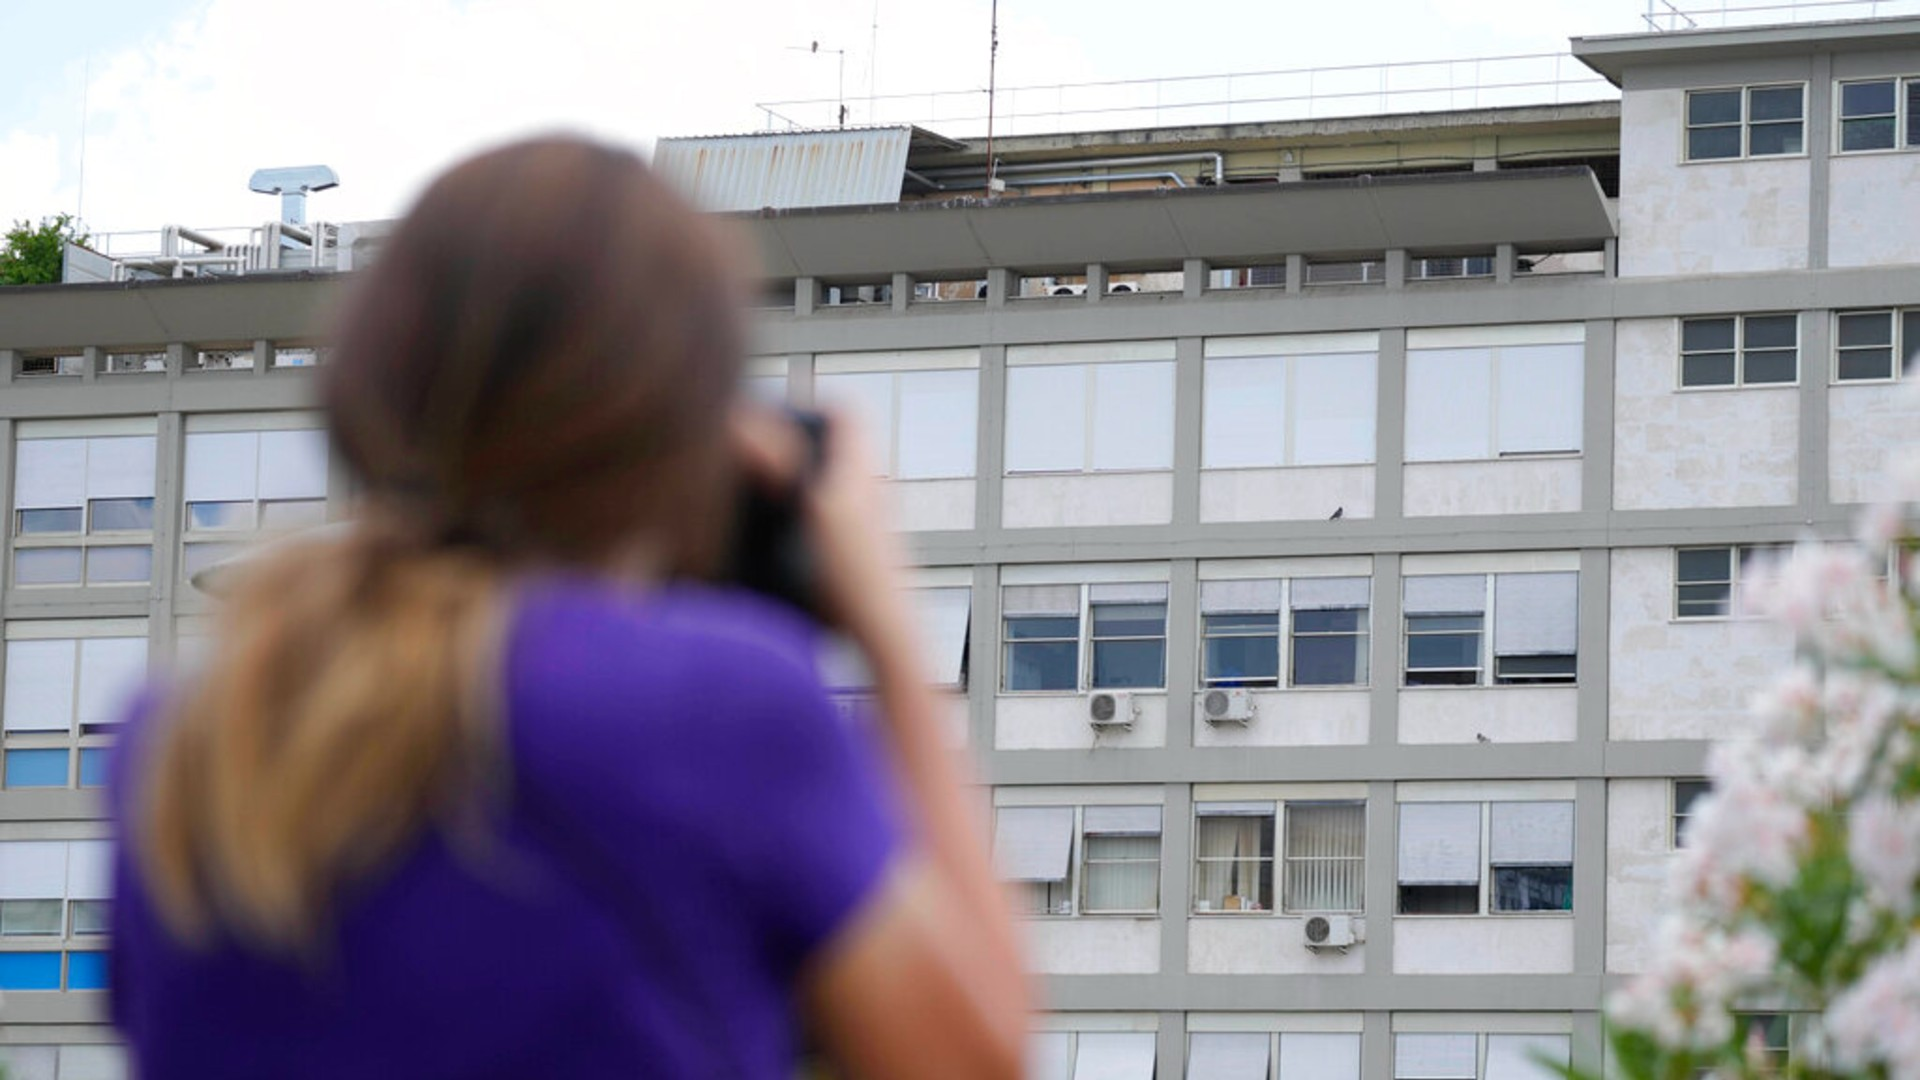 A press photographer aims her lens at the 10th floor of the Agostino Gemelli hospital, where Pope Francis was hospitalized Sunday, in Rome, Friday, July 9, 2021. (AP Photo/Gregorio Borgia)